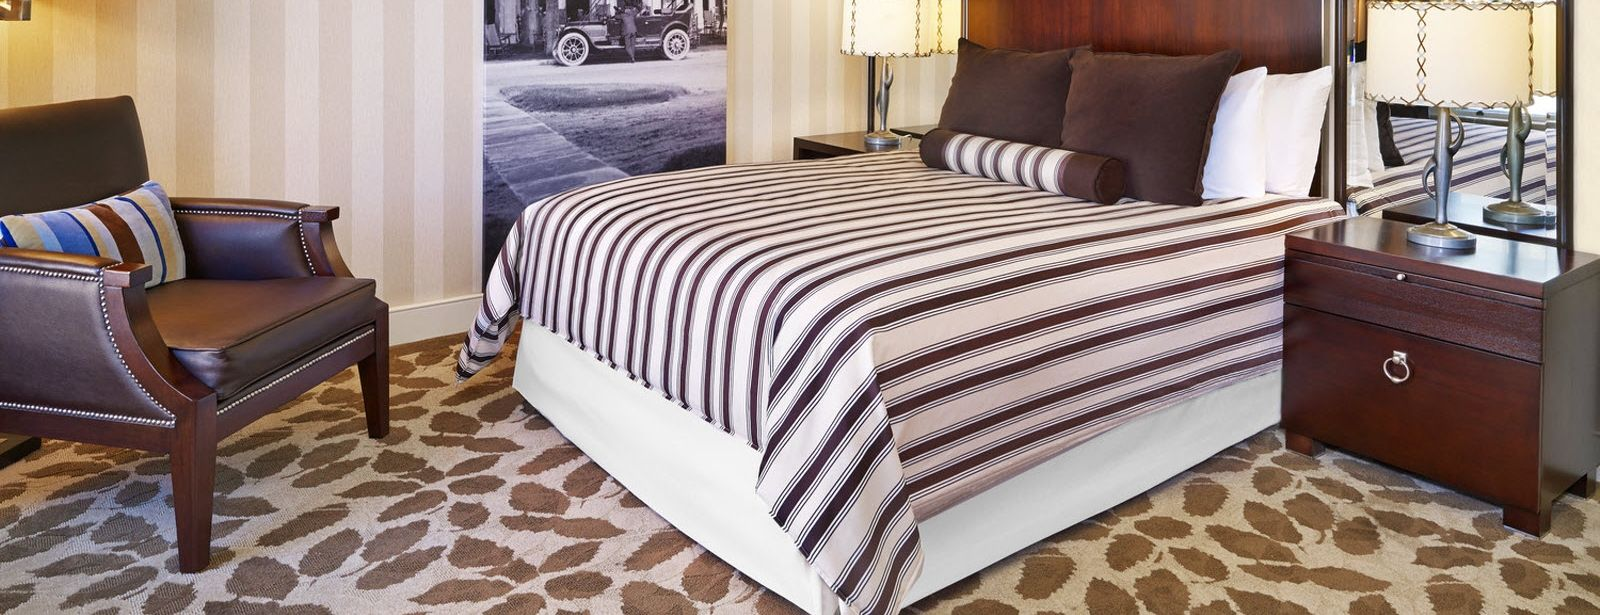 The Equinox, a Luxury Collection Golf Resort & Spa, Vermont Traditional guest room bed